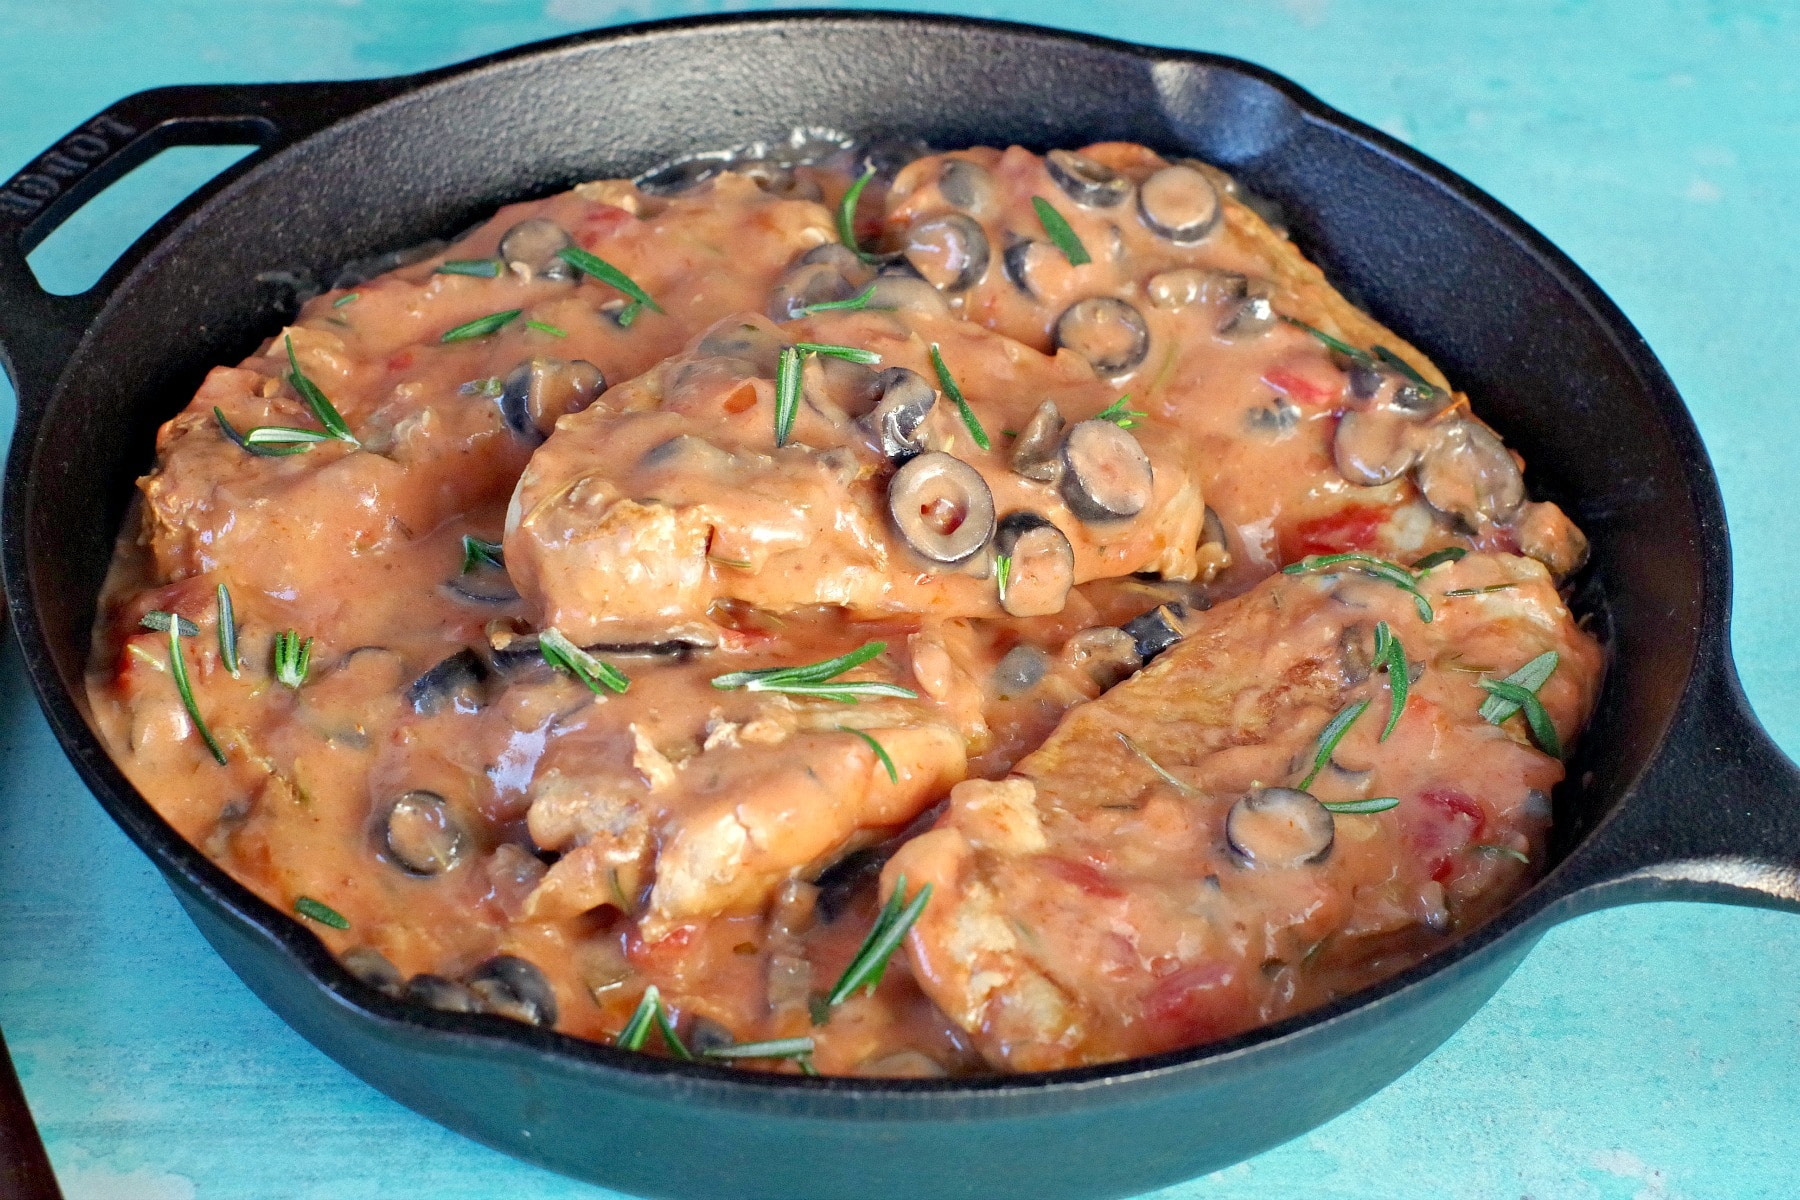 Pork with creamy mushroom salsa sauce in cast iron pan